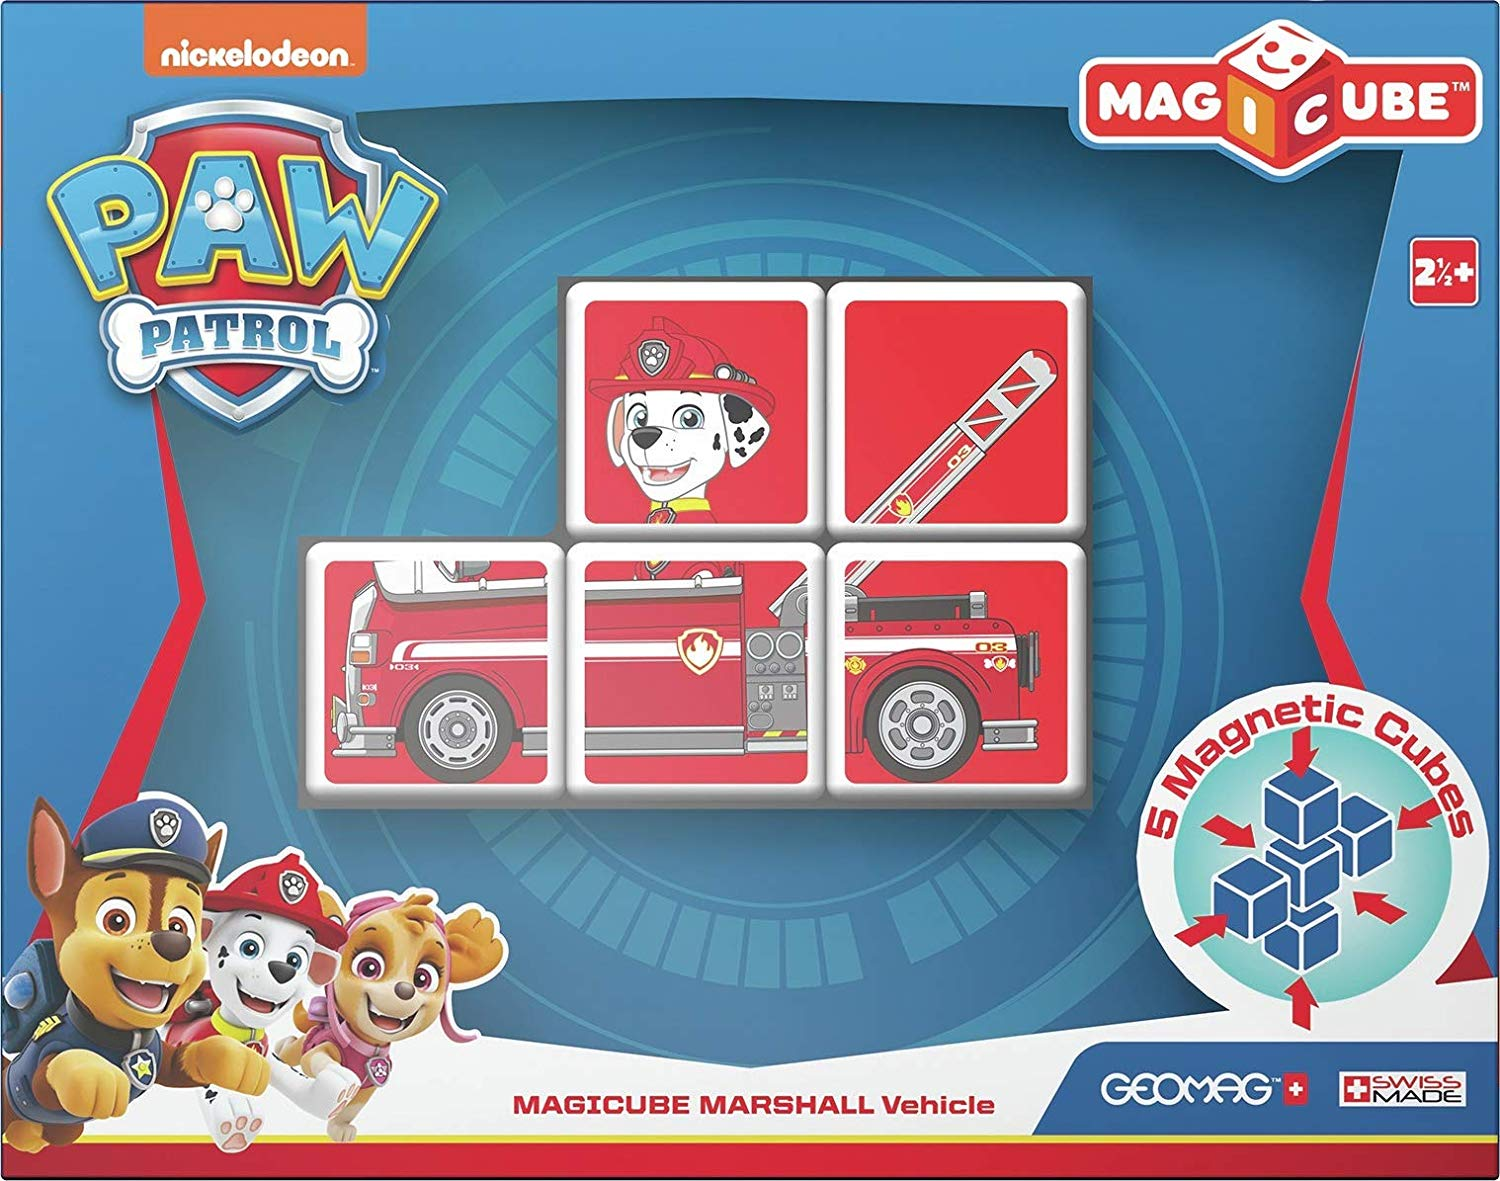 Geomag MAGICUBE PAW PATROL SKYE VEHICLE GM080 - Wild Willy - Toys Lebanon